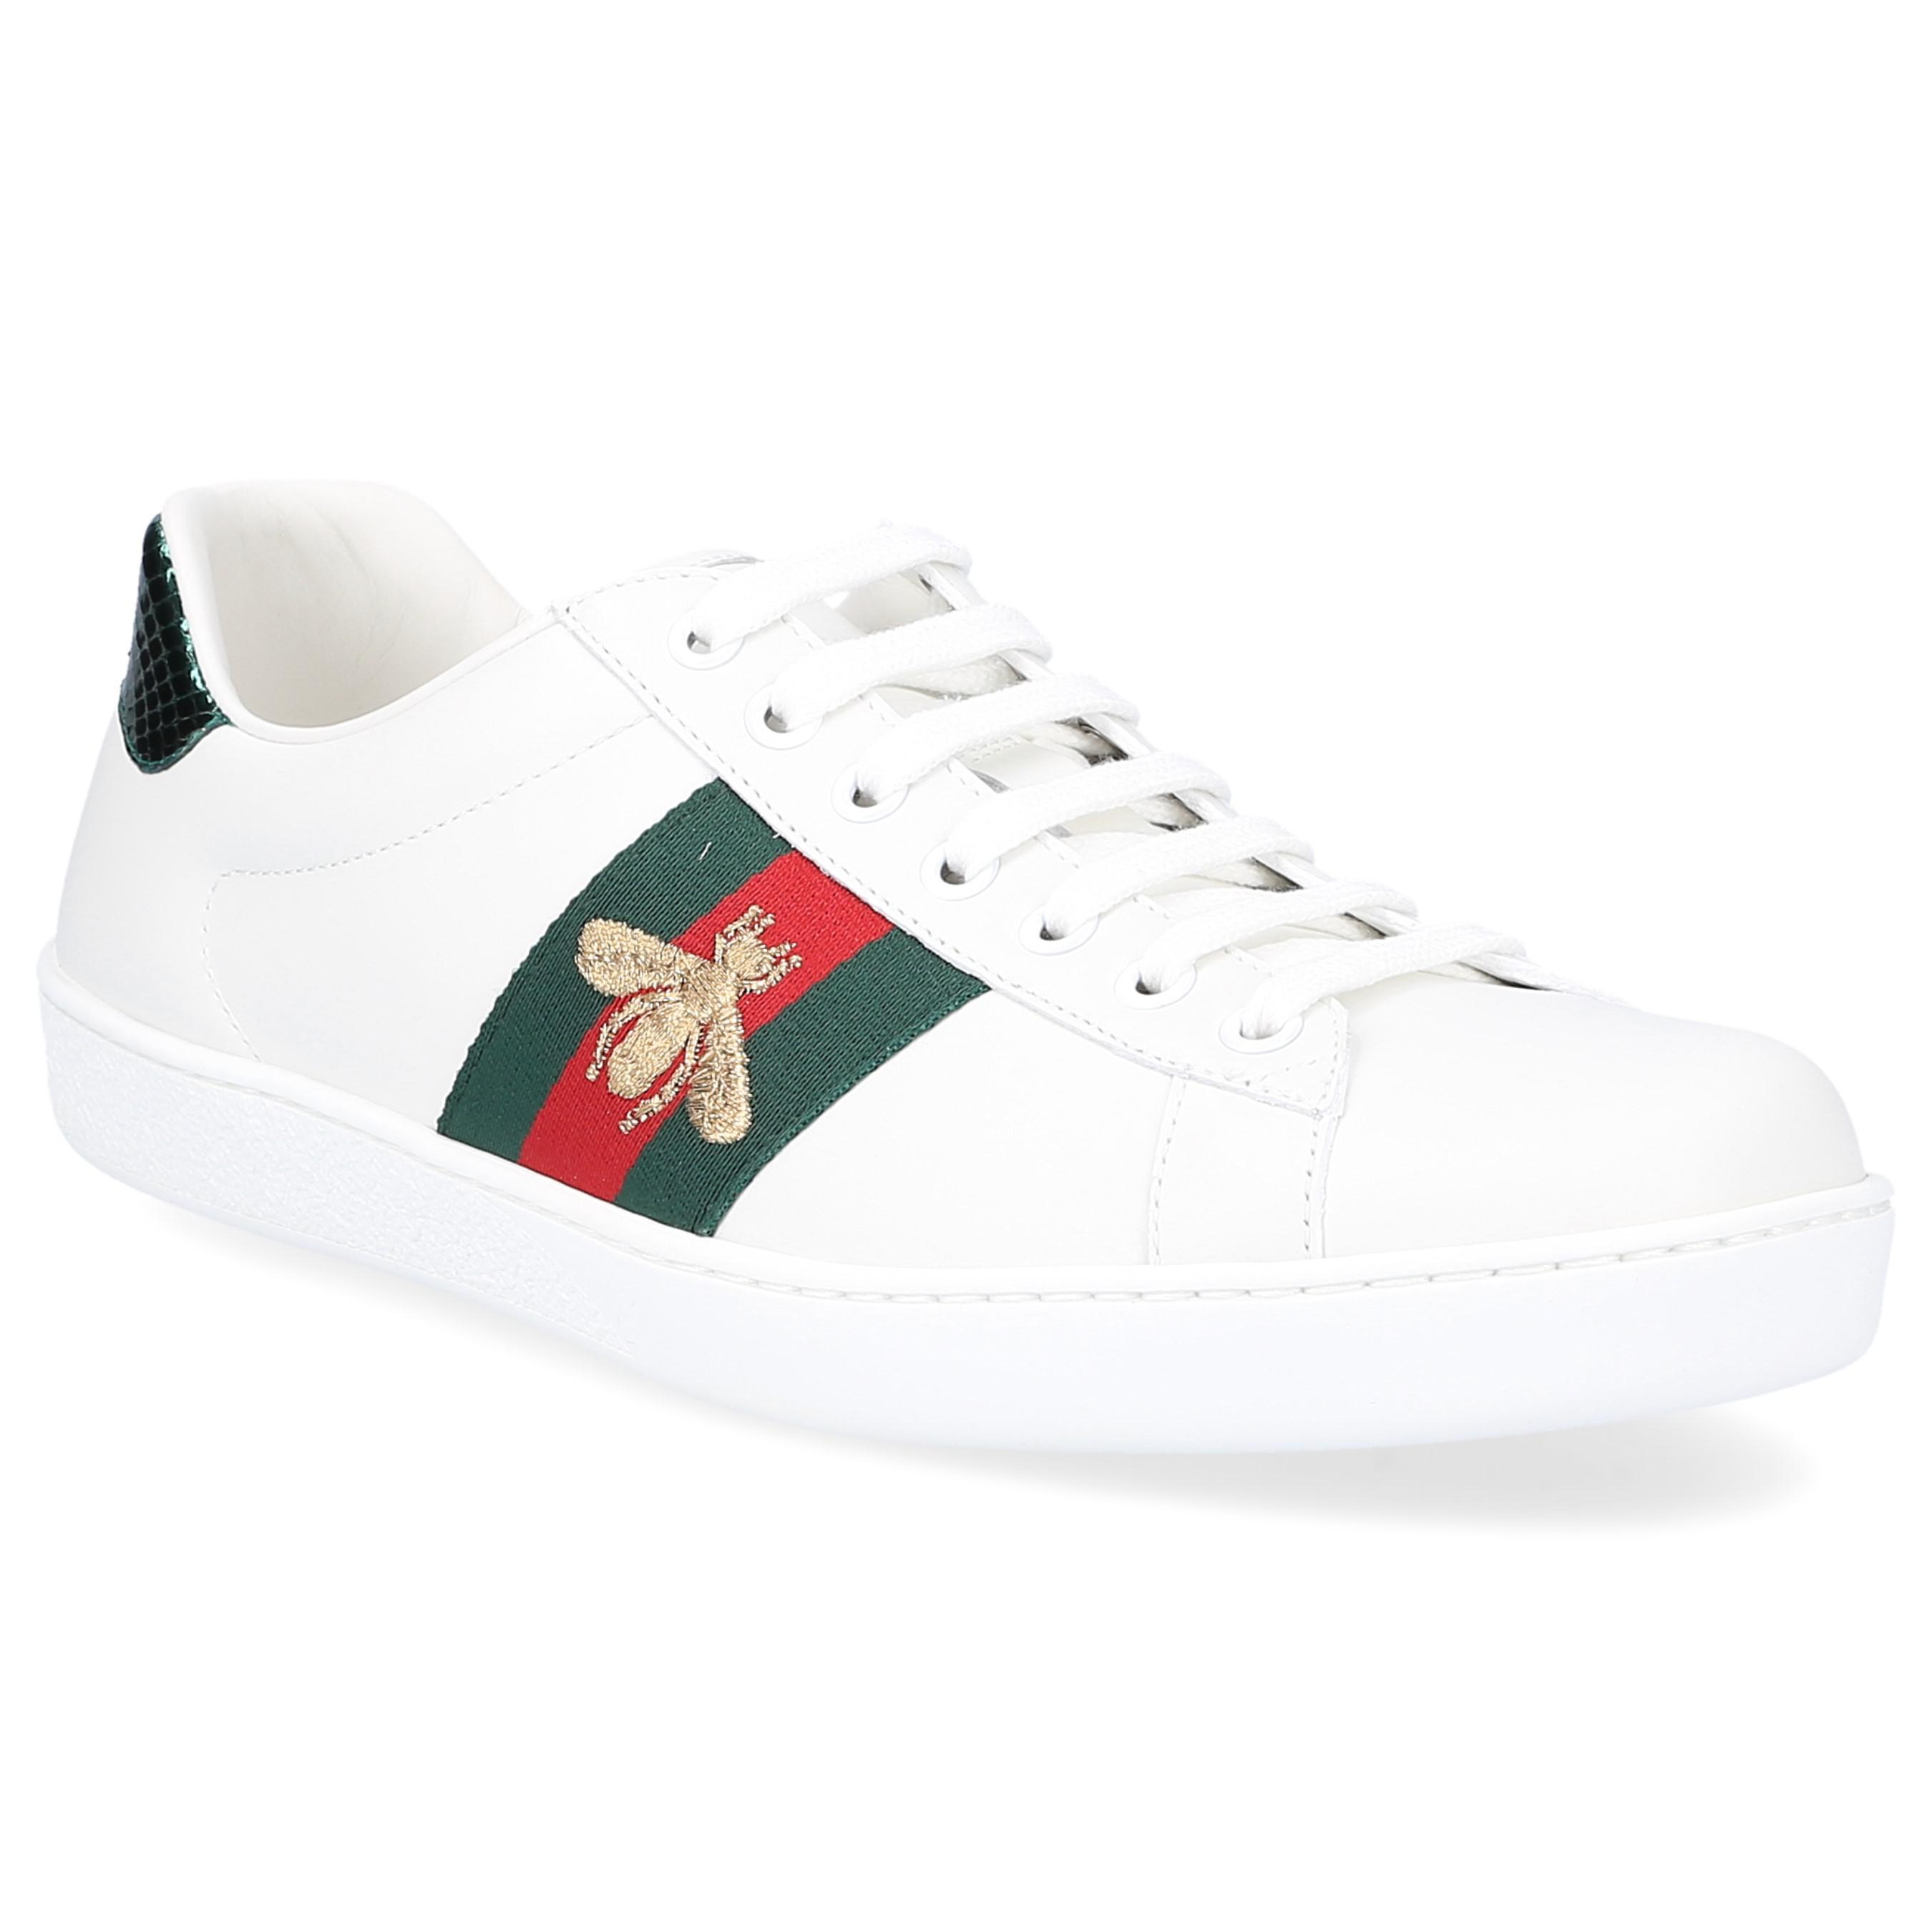 Sneaker low ACE calfskin Embroidery Gucci woven-details Logo black Gucci 48h8prz